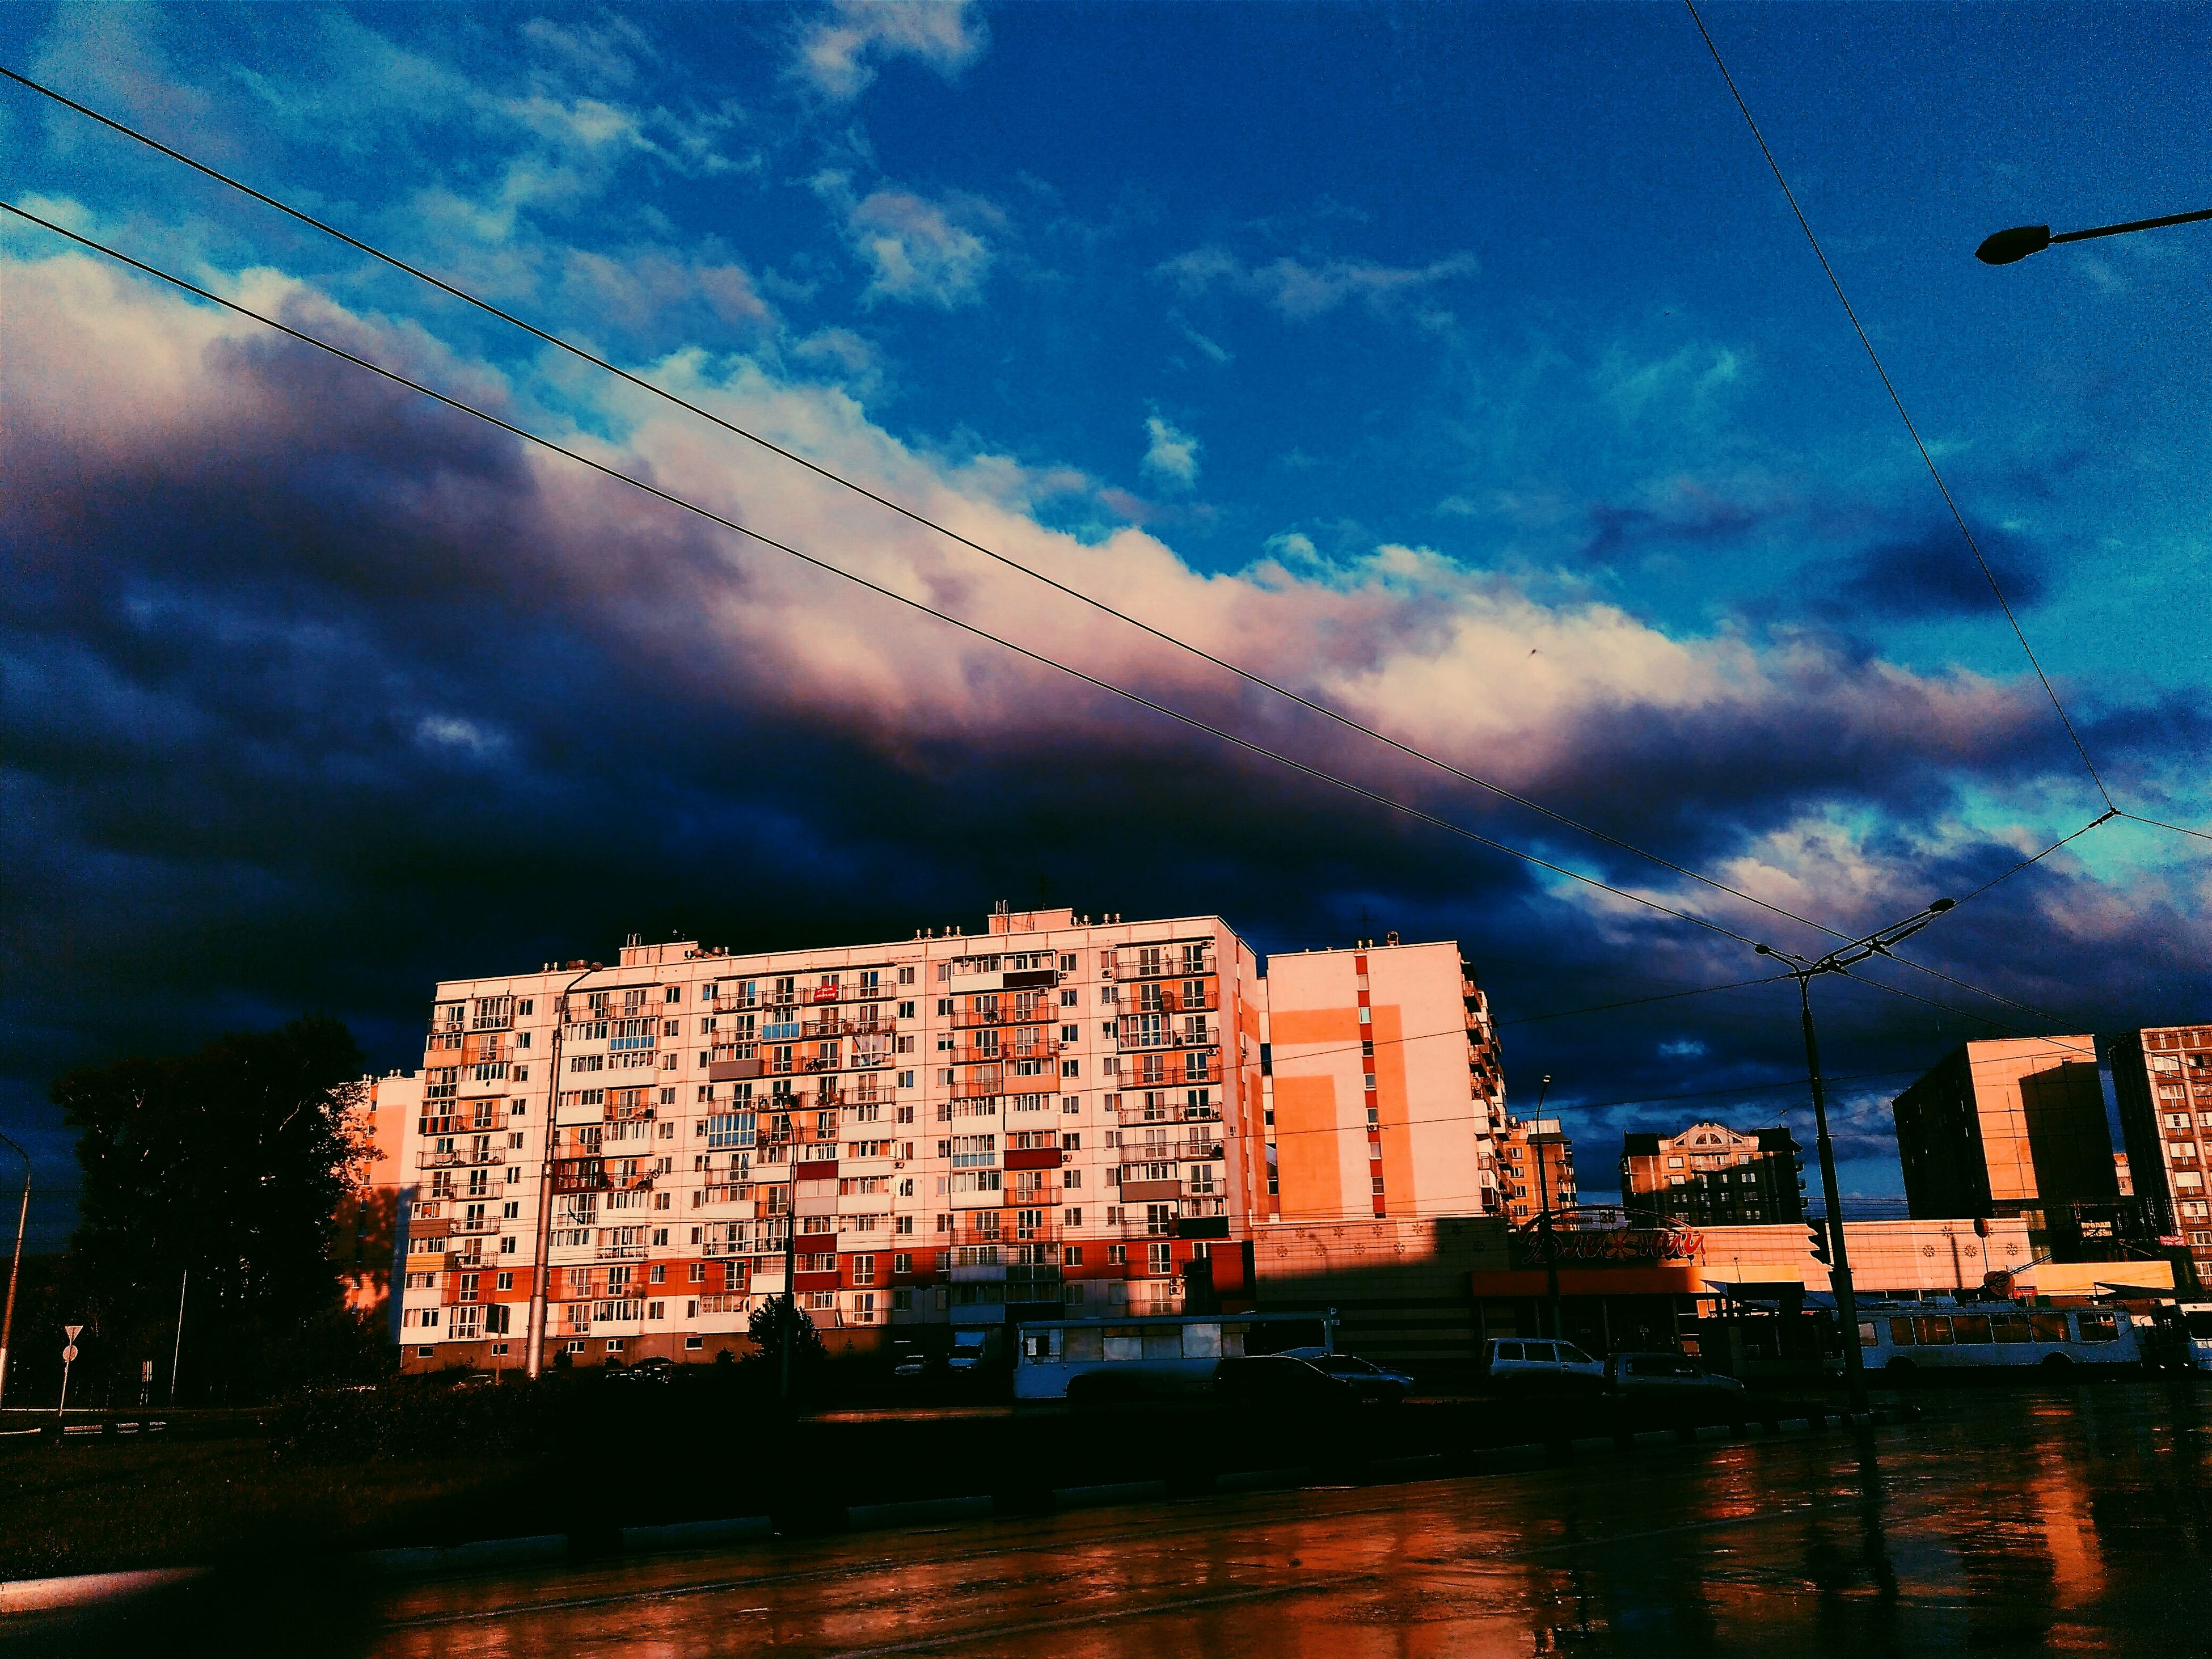 sky, architecture, built structure, cloud - sky, cloudy, city, dusk, weather, illuminated, cloud, building, outdoors, city life, no people, overcast, nature, cable, day